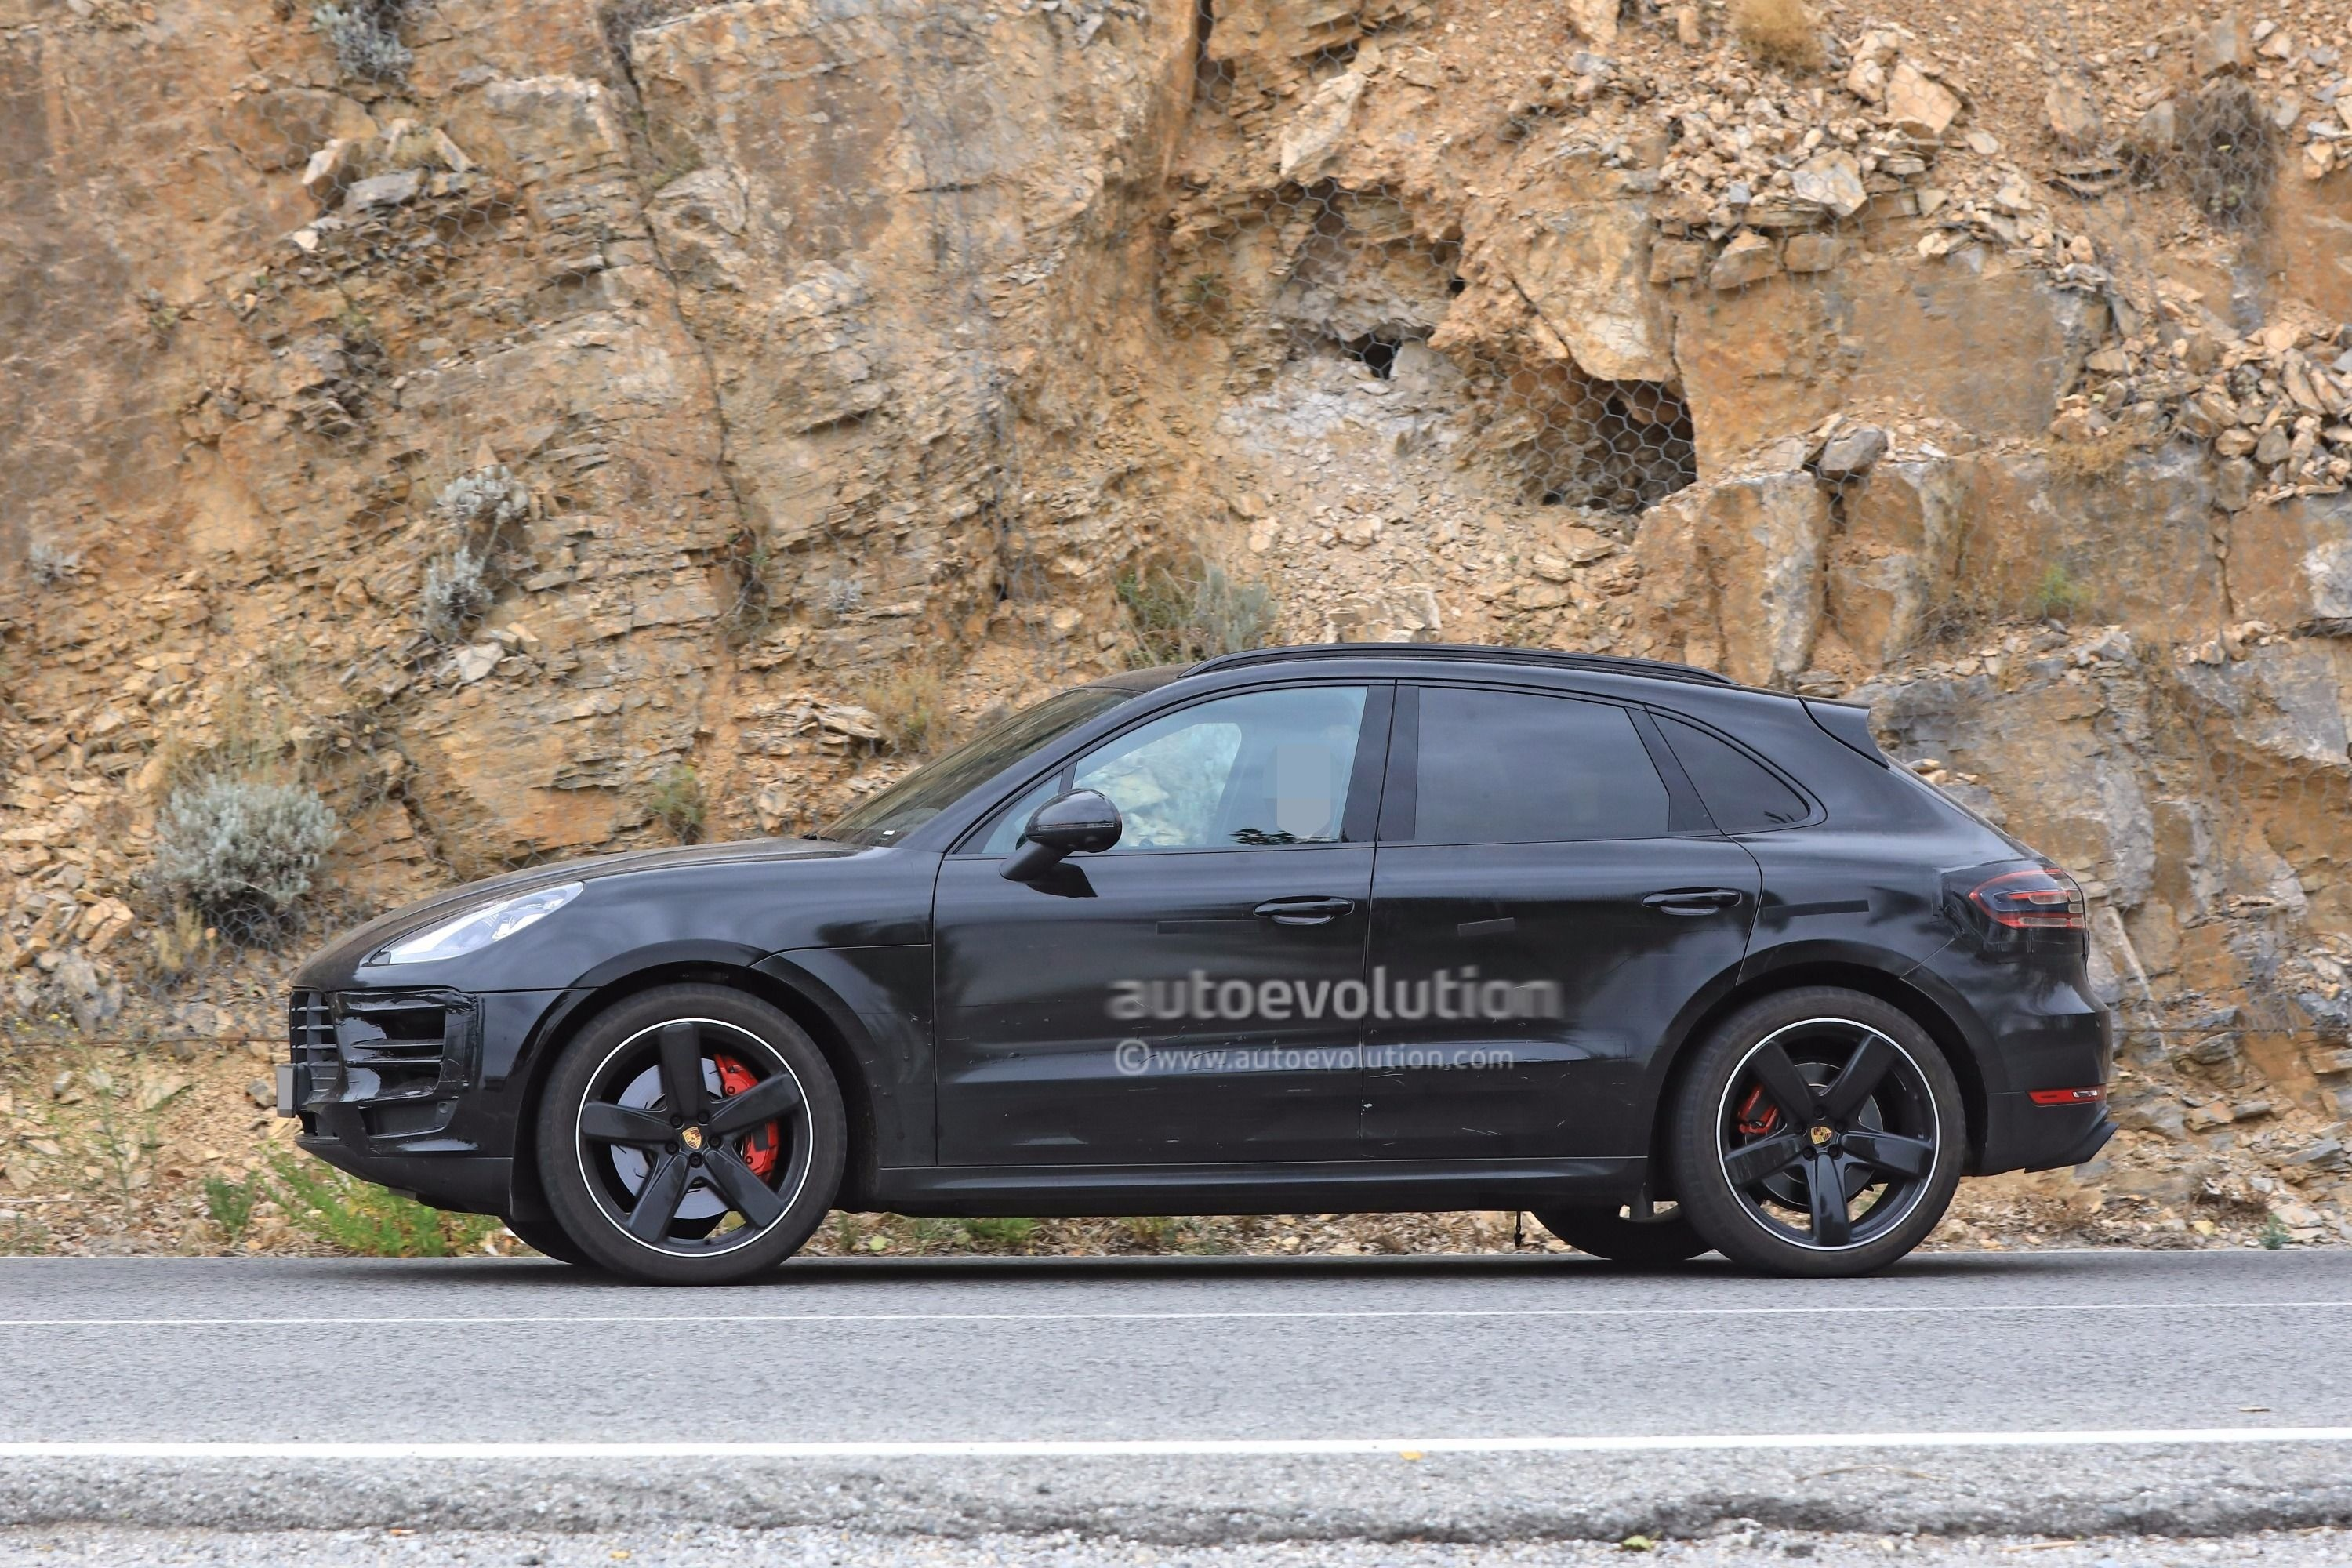 Total Care Auto >> Spyshots: 2019 Porsche Macan Prototype Poses For The Camera - autoevolution